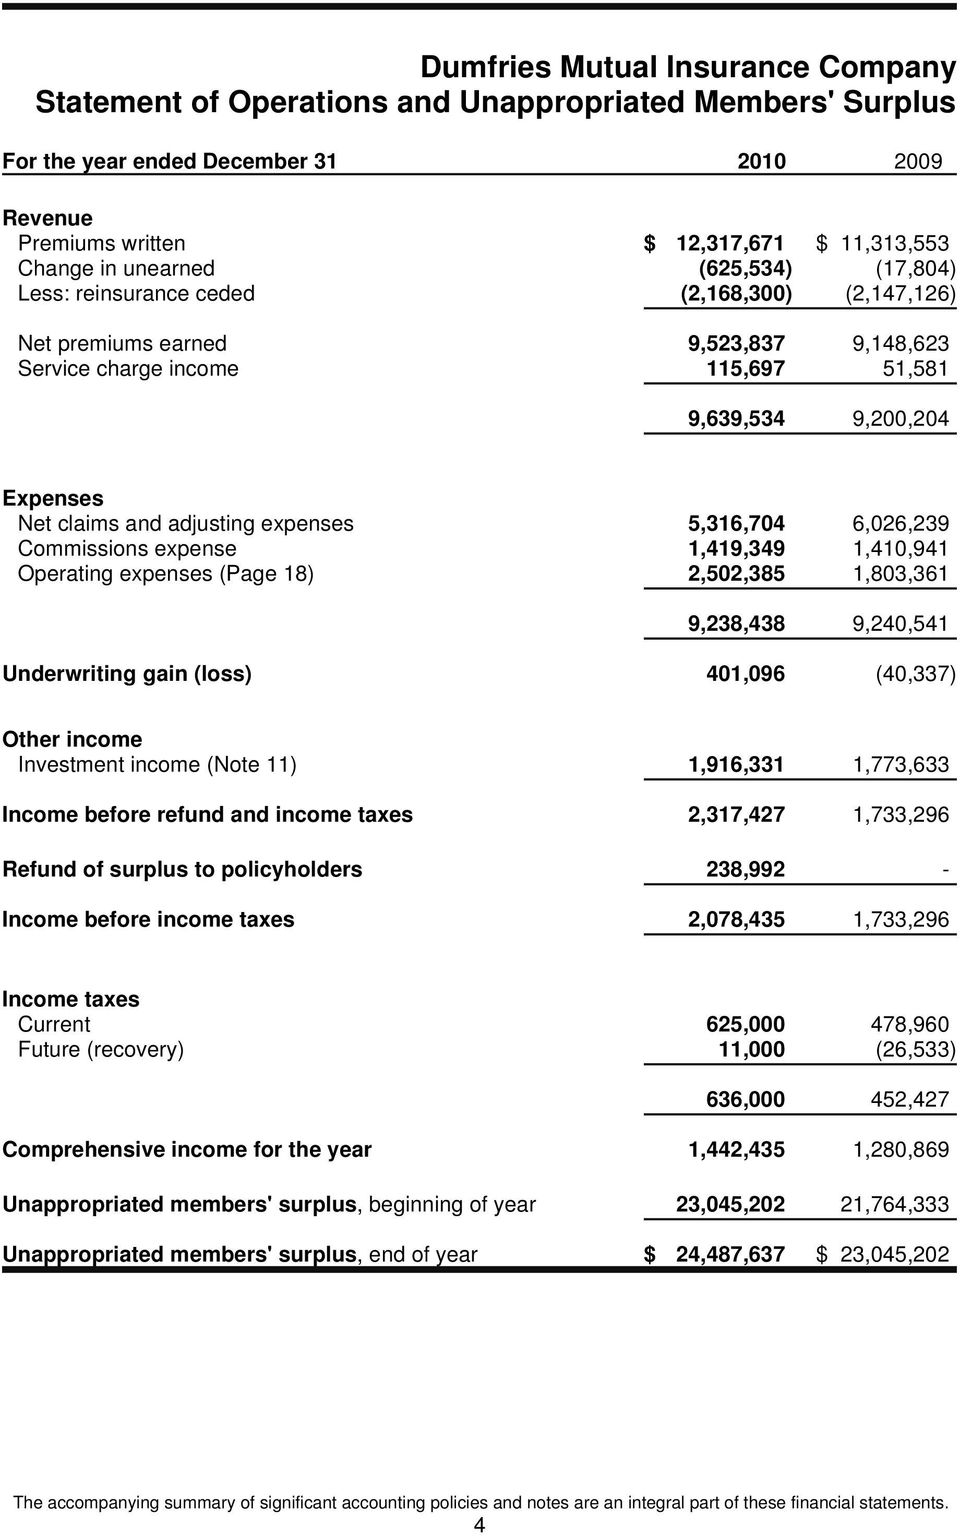 6,026,239 Commissions expense 1,419,349 1,410,941 Operating expenses (Page 18) 2,502,385 1,803,361 9,238,438 9,240,541 Underwriting gain (loss) 401,096 (40,337) Other income Investment income (Note